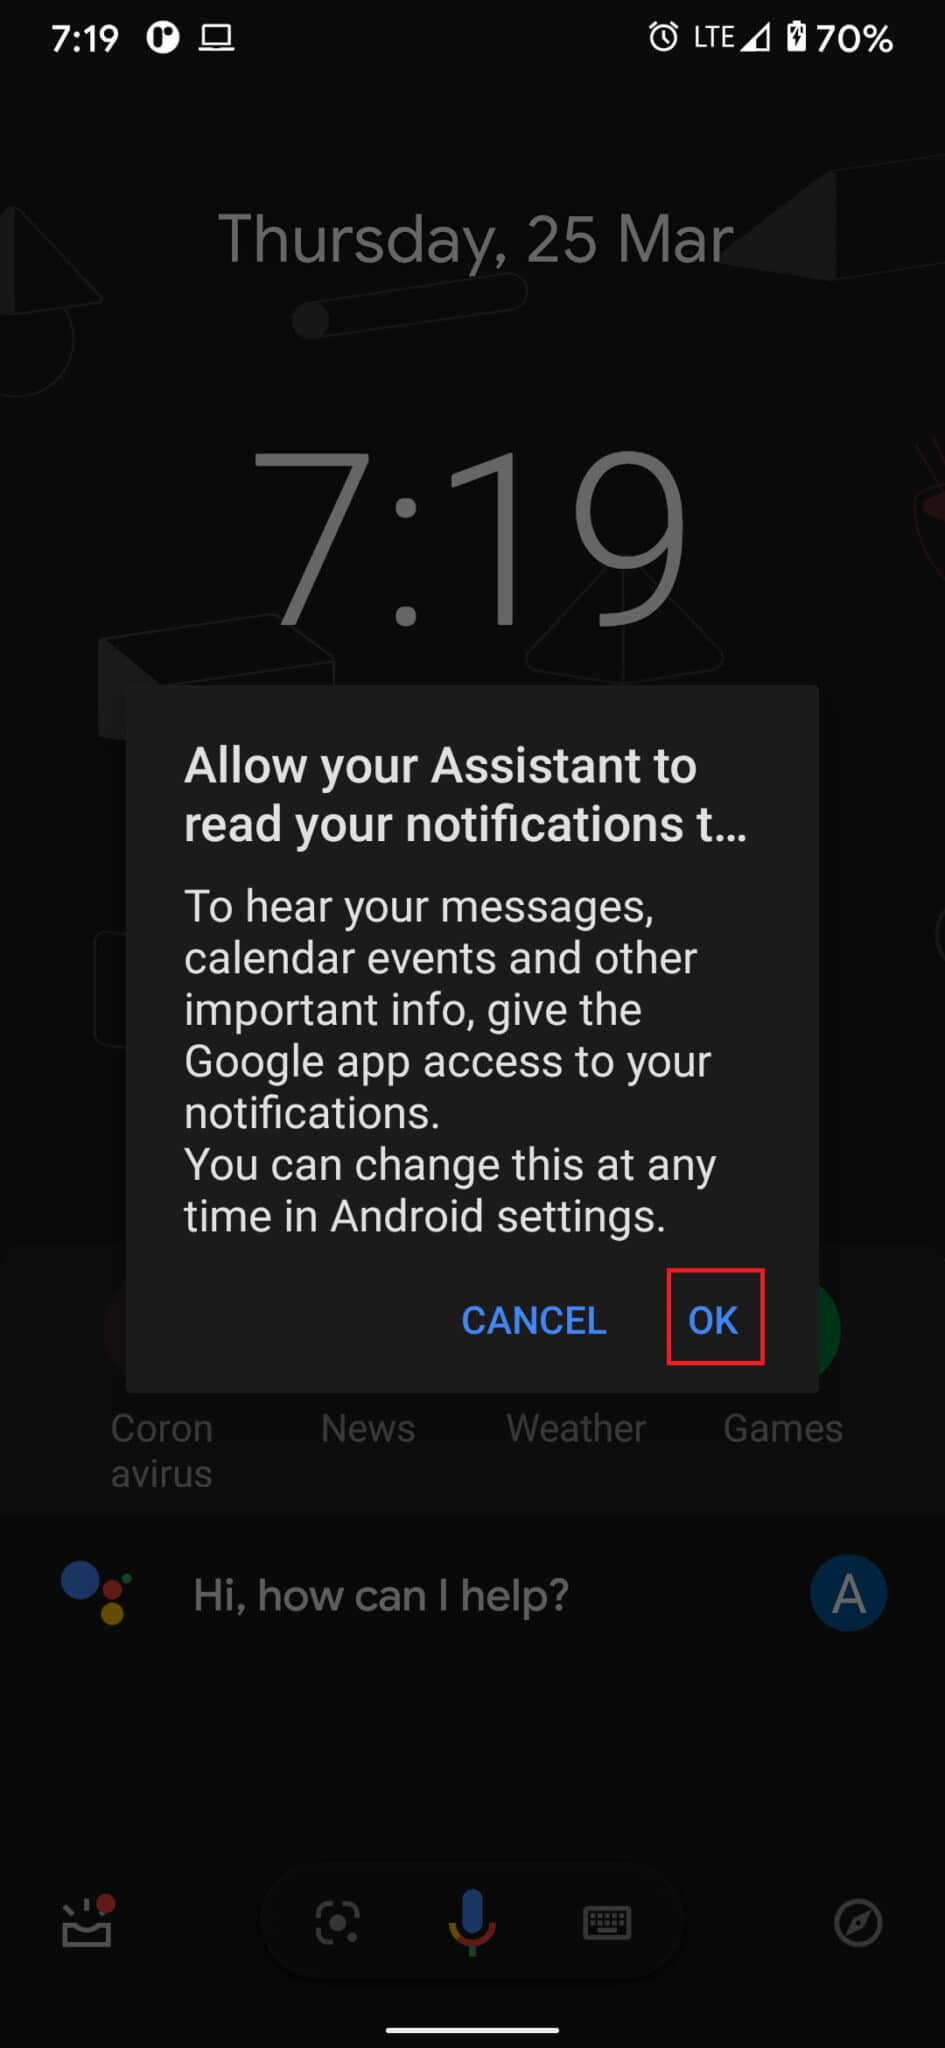 Tap on 'Ok' on the permission window that opens up to proceed.How to Use Text to Speech Android